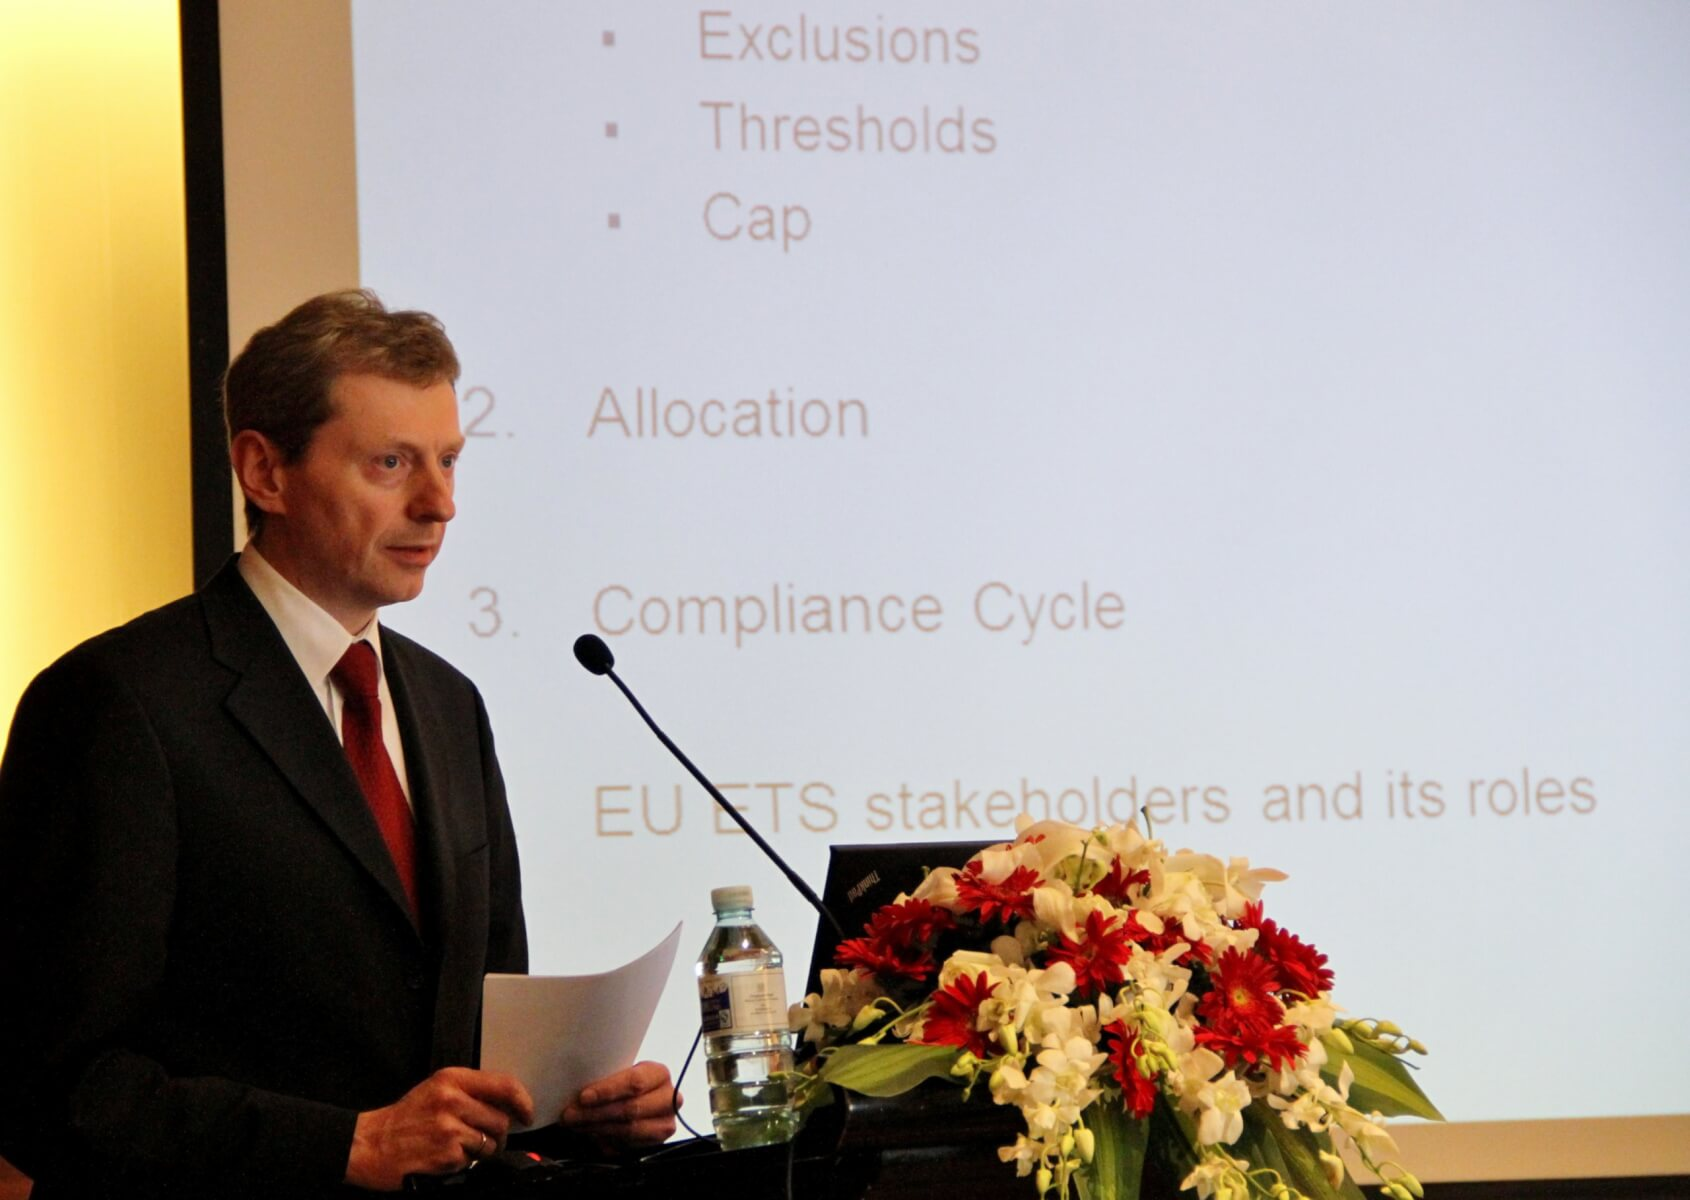 Dr. Olaf Hölzer-Schopohl, Head of the Aviation Unit at the German Emissions Trading Authority (DEHSt)